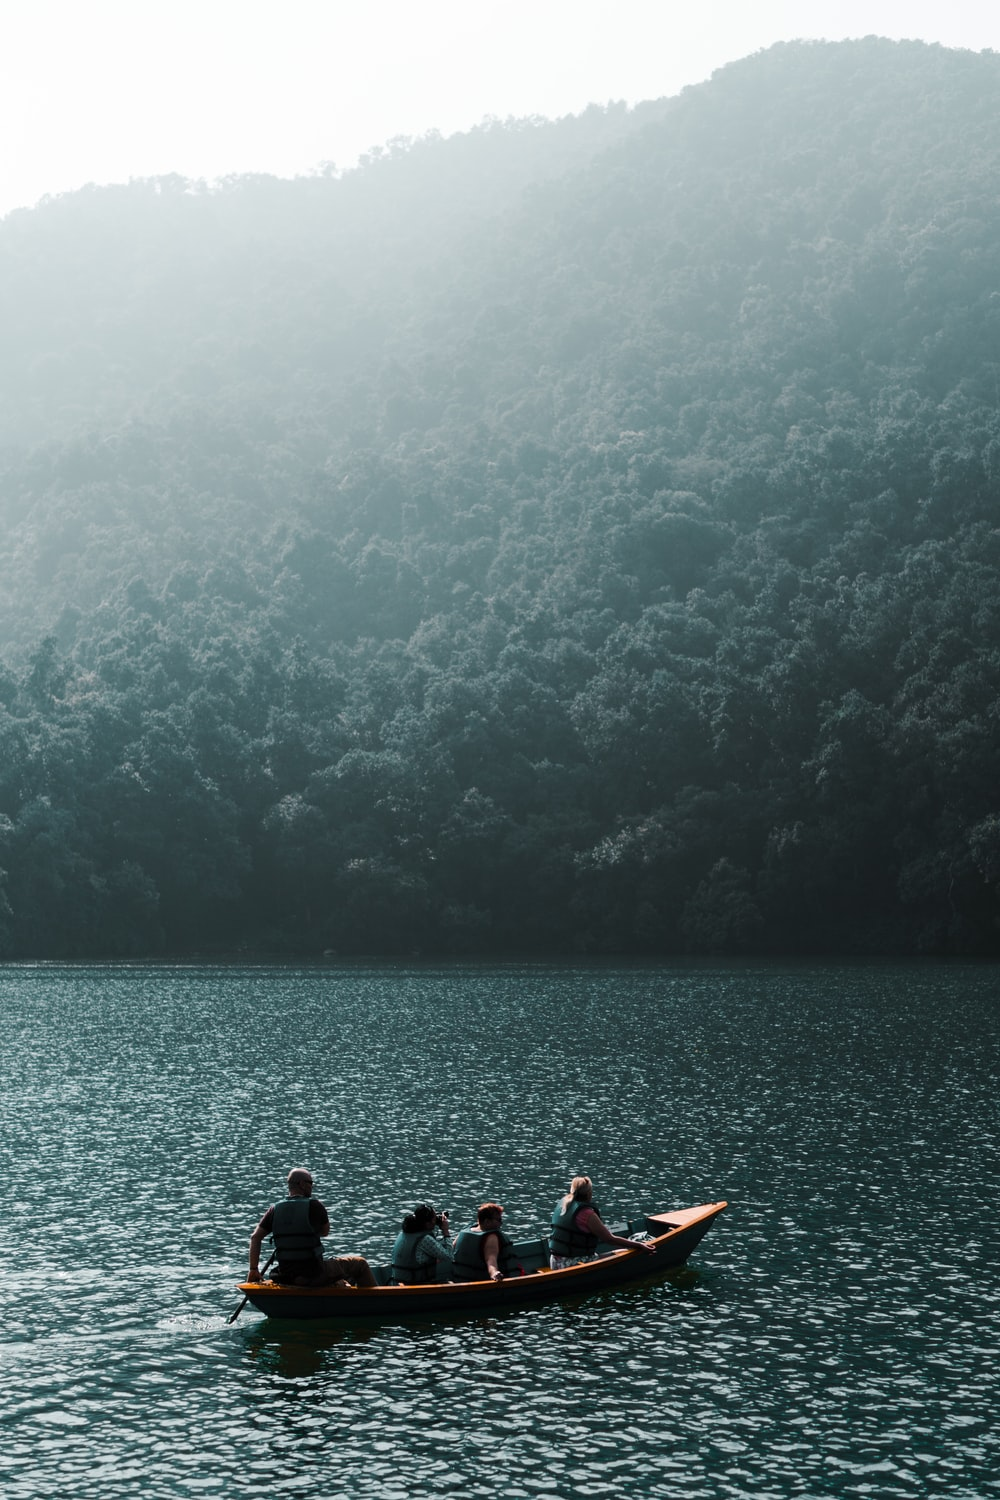 four person riding boat